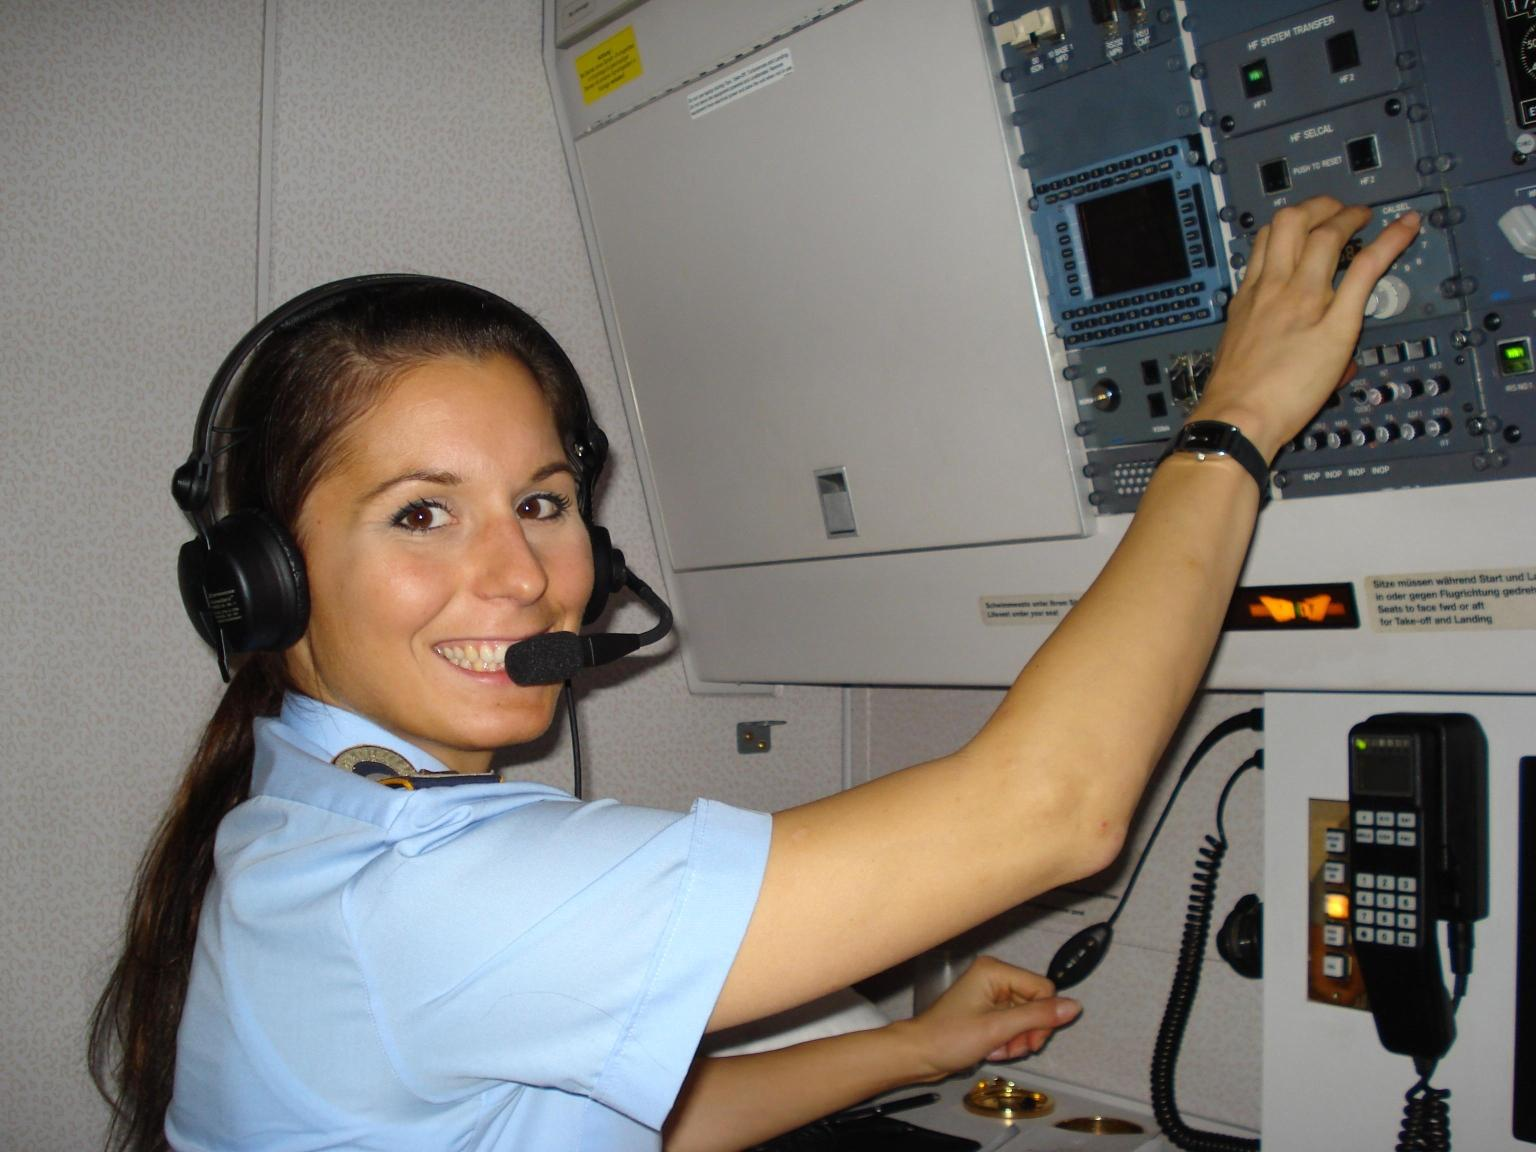 Regina at her workstation within the Airbus aircraft